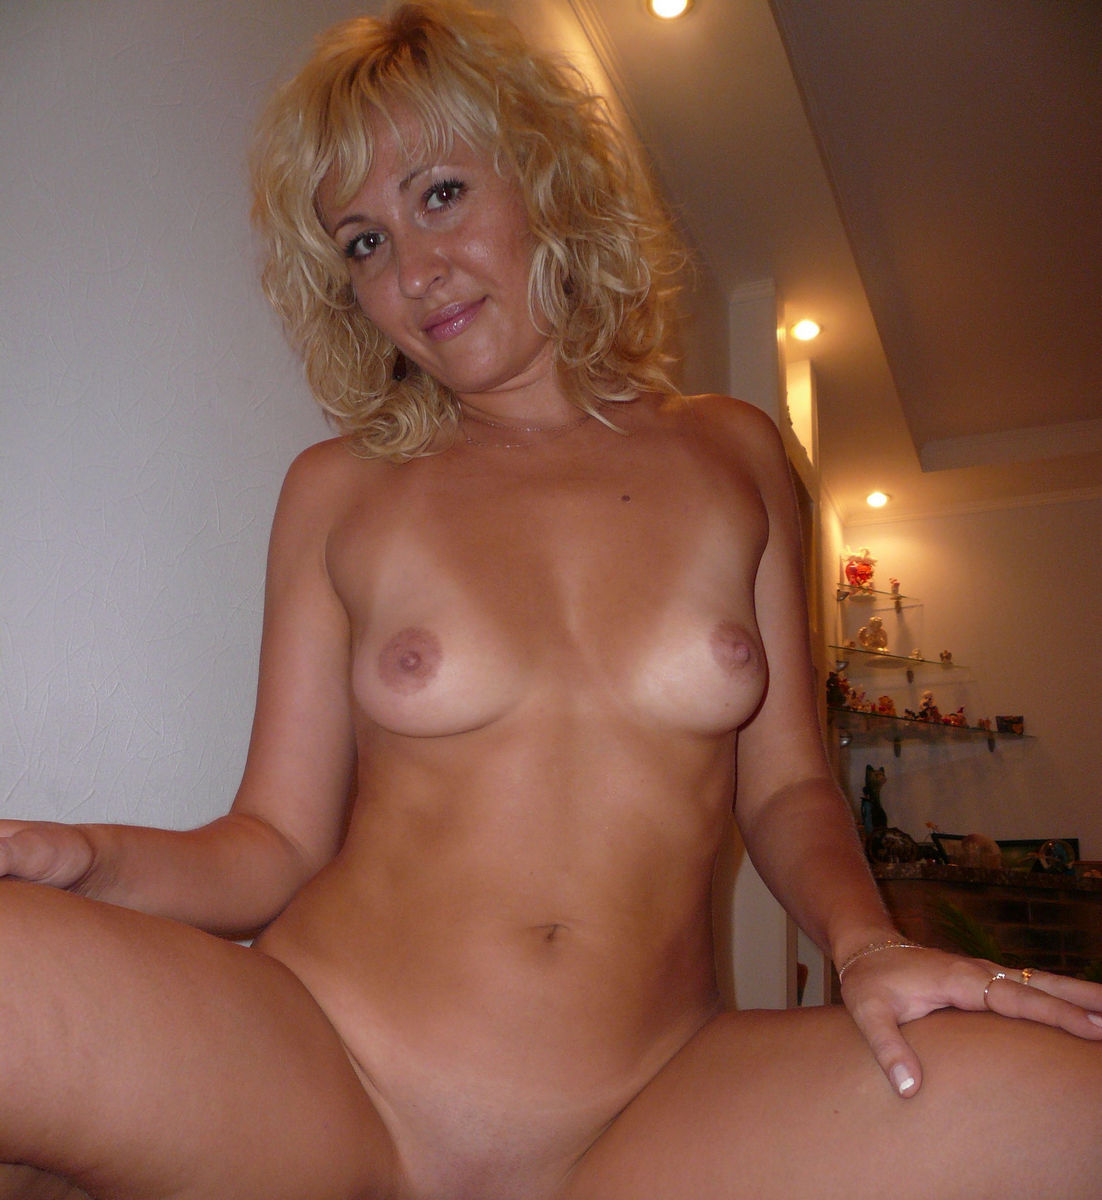 Hot naked blonde amateurs